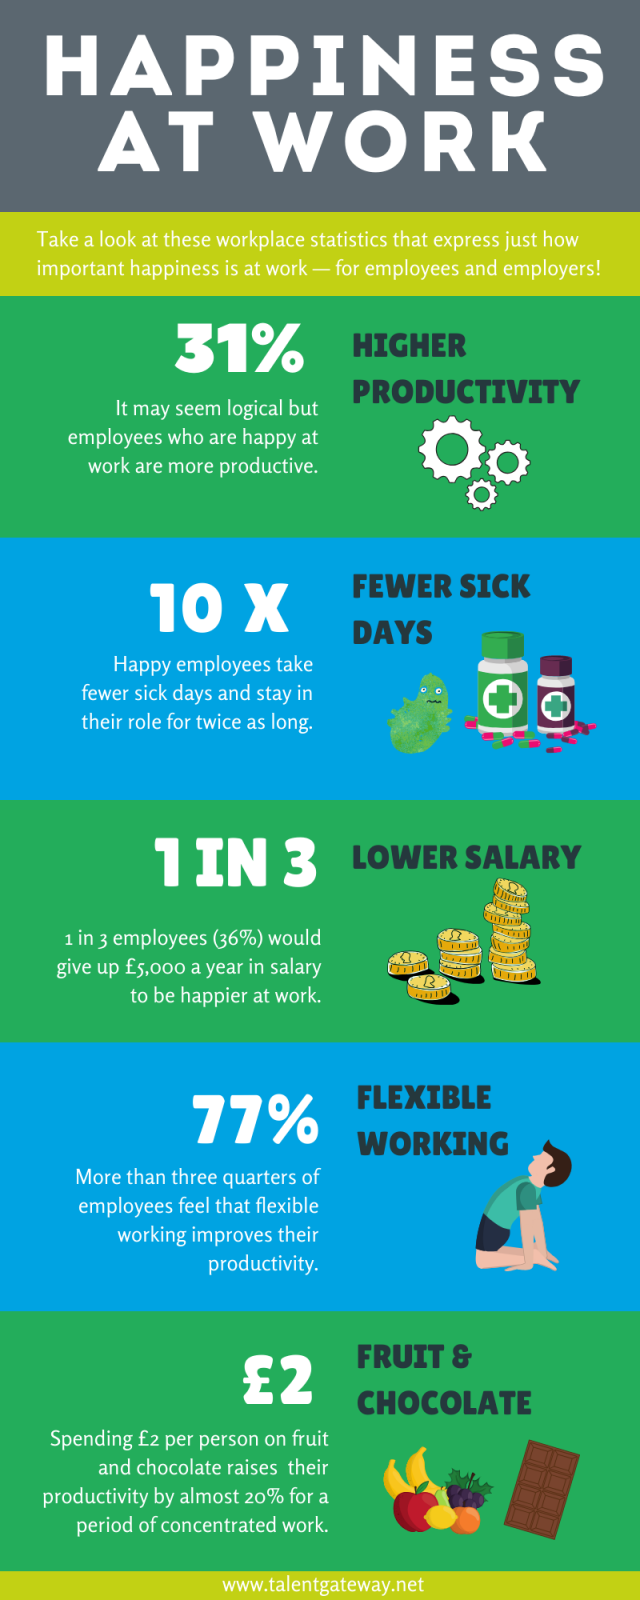 An infographic about Happiness at work.